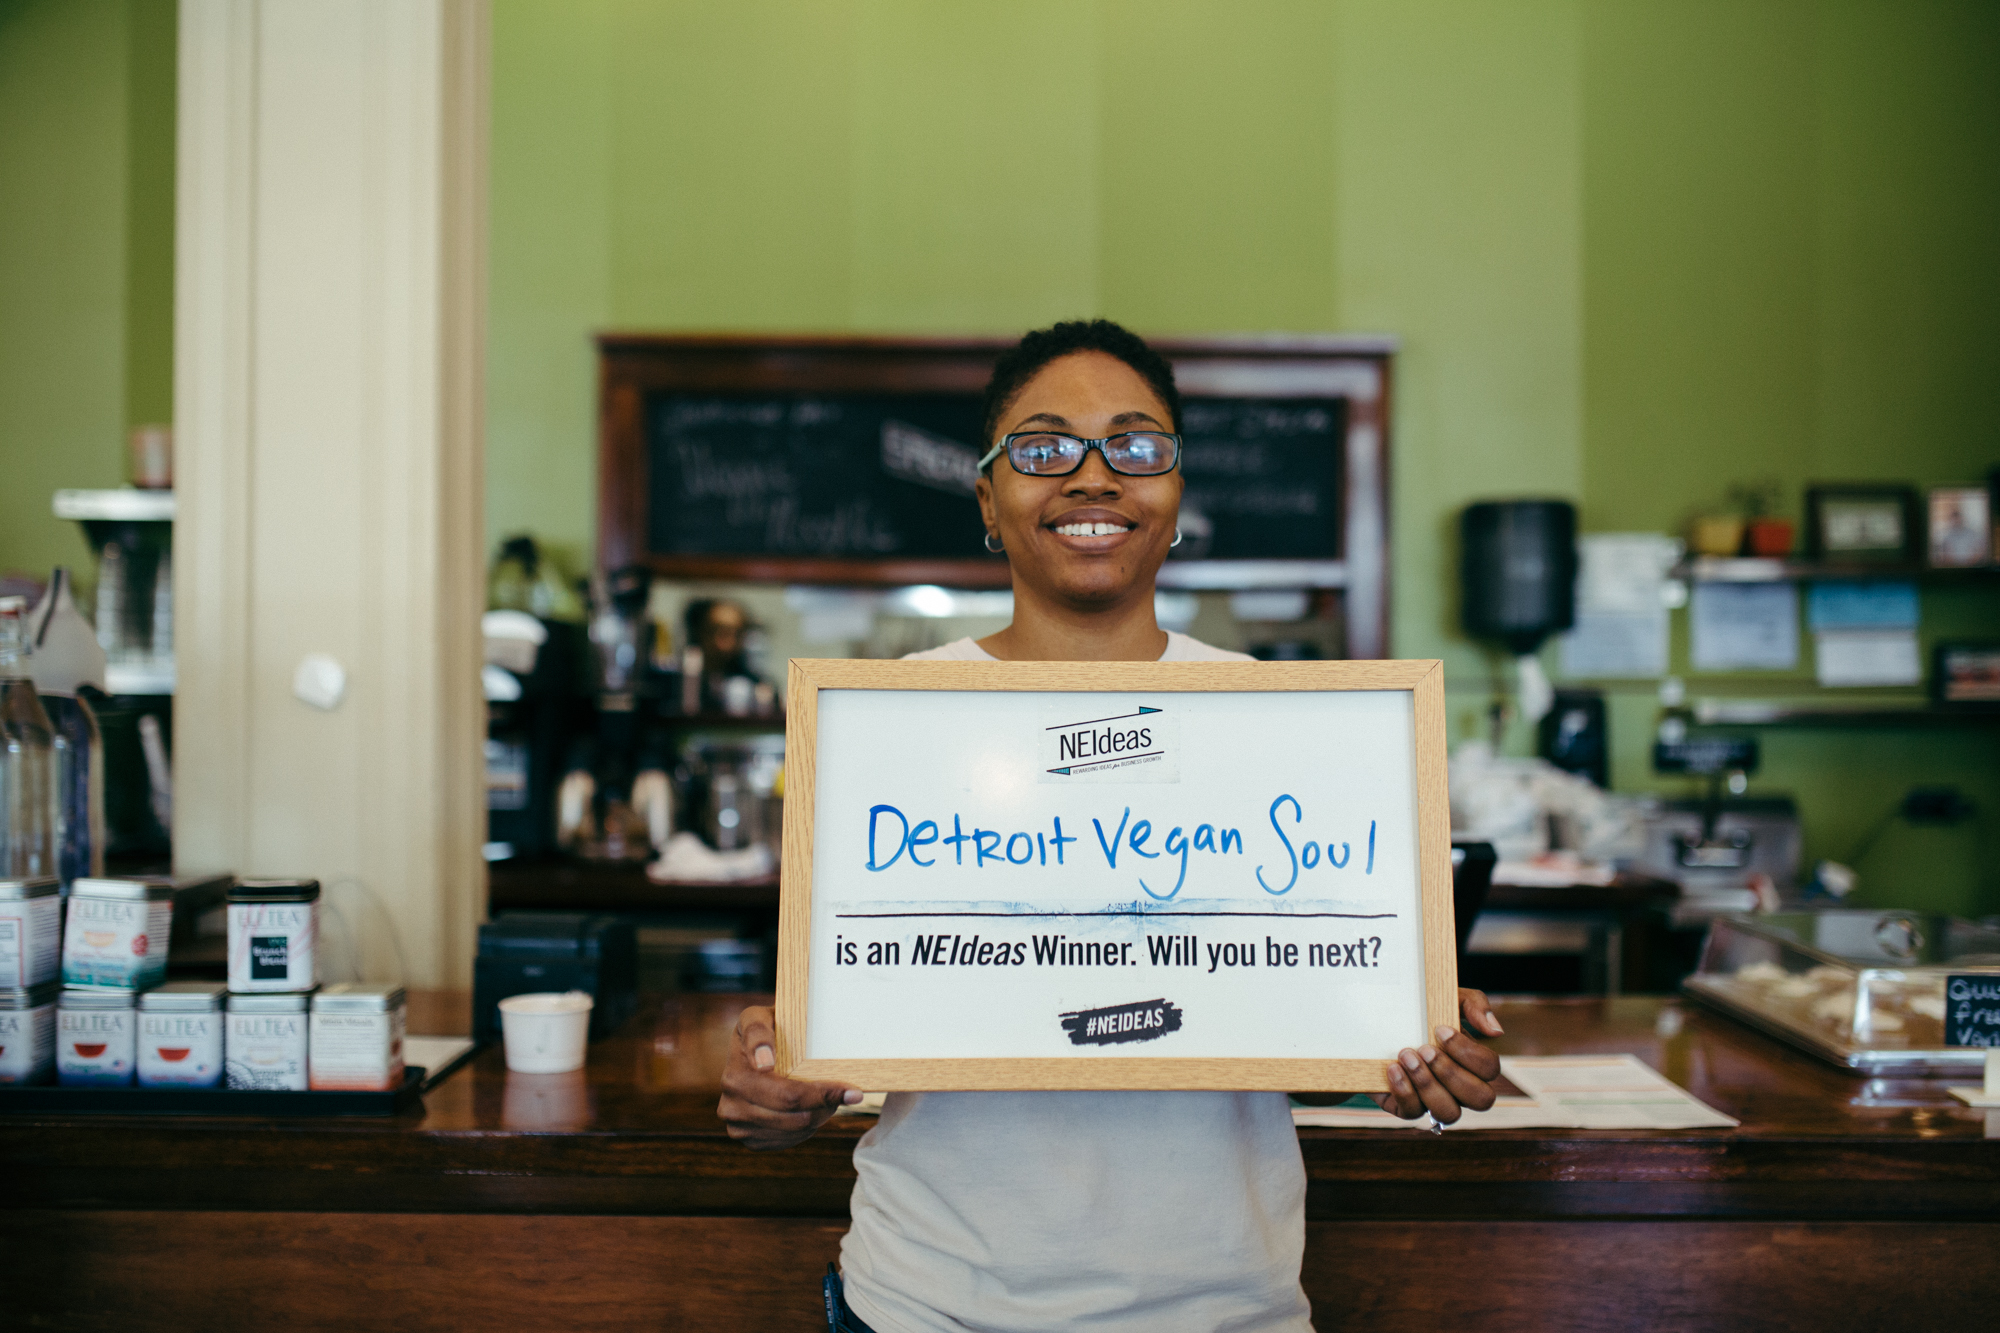 Past winner Detroit Vegan Soul